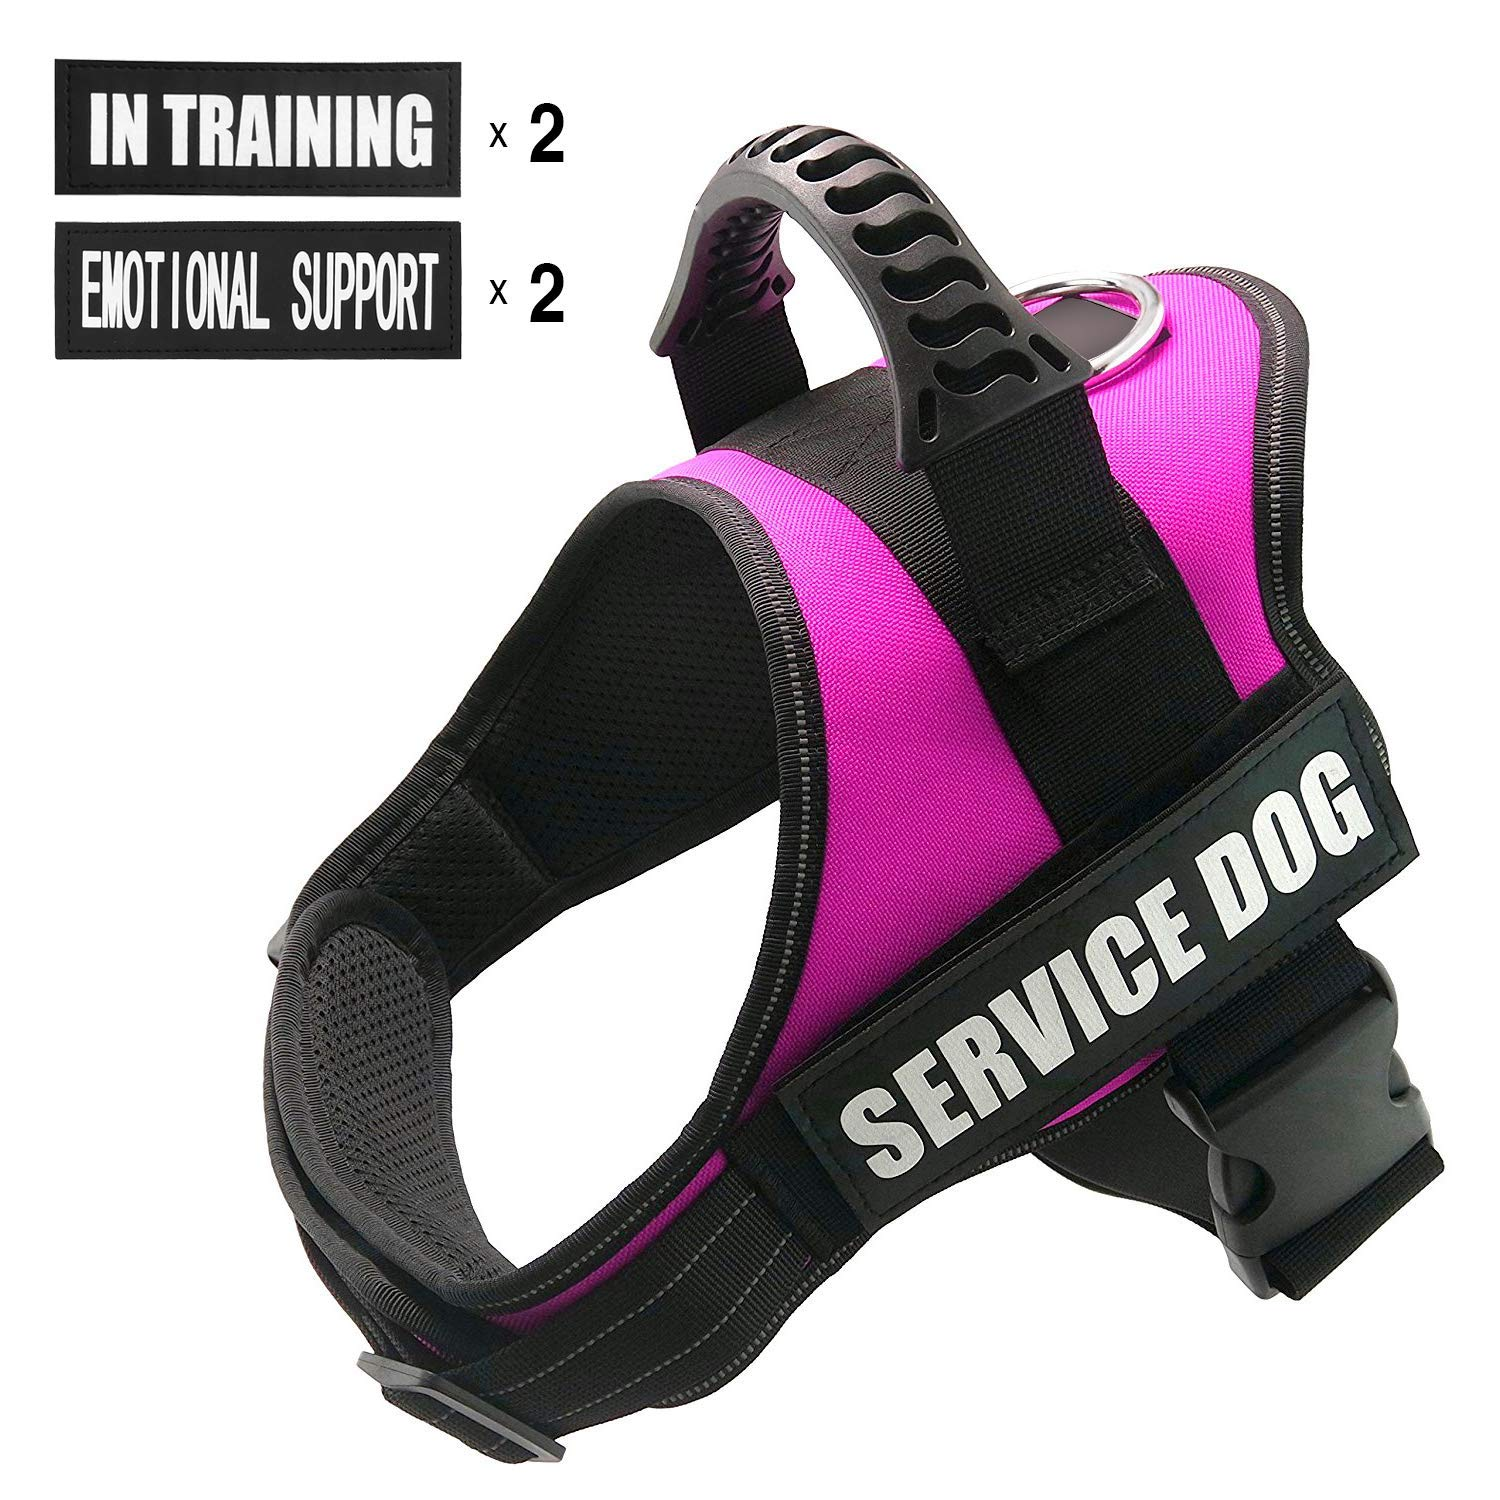 FAYOGOO Dog Vest Harness for Service Dogs, Comfortable Padded Dog Training Vest with Reflective Patches and Handle for Large Medium Small Dogs (Large: Chest 28-37'' Neck 23-29'', Pink)